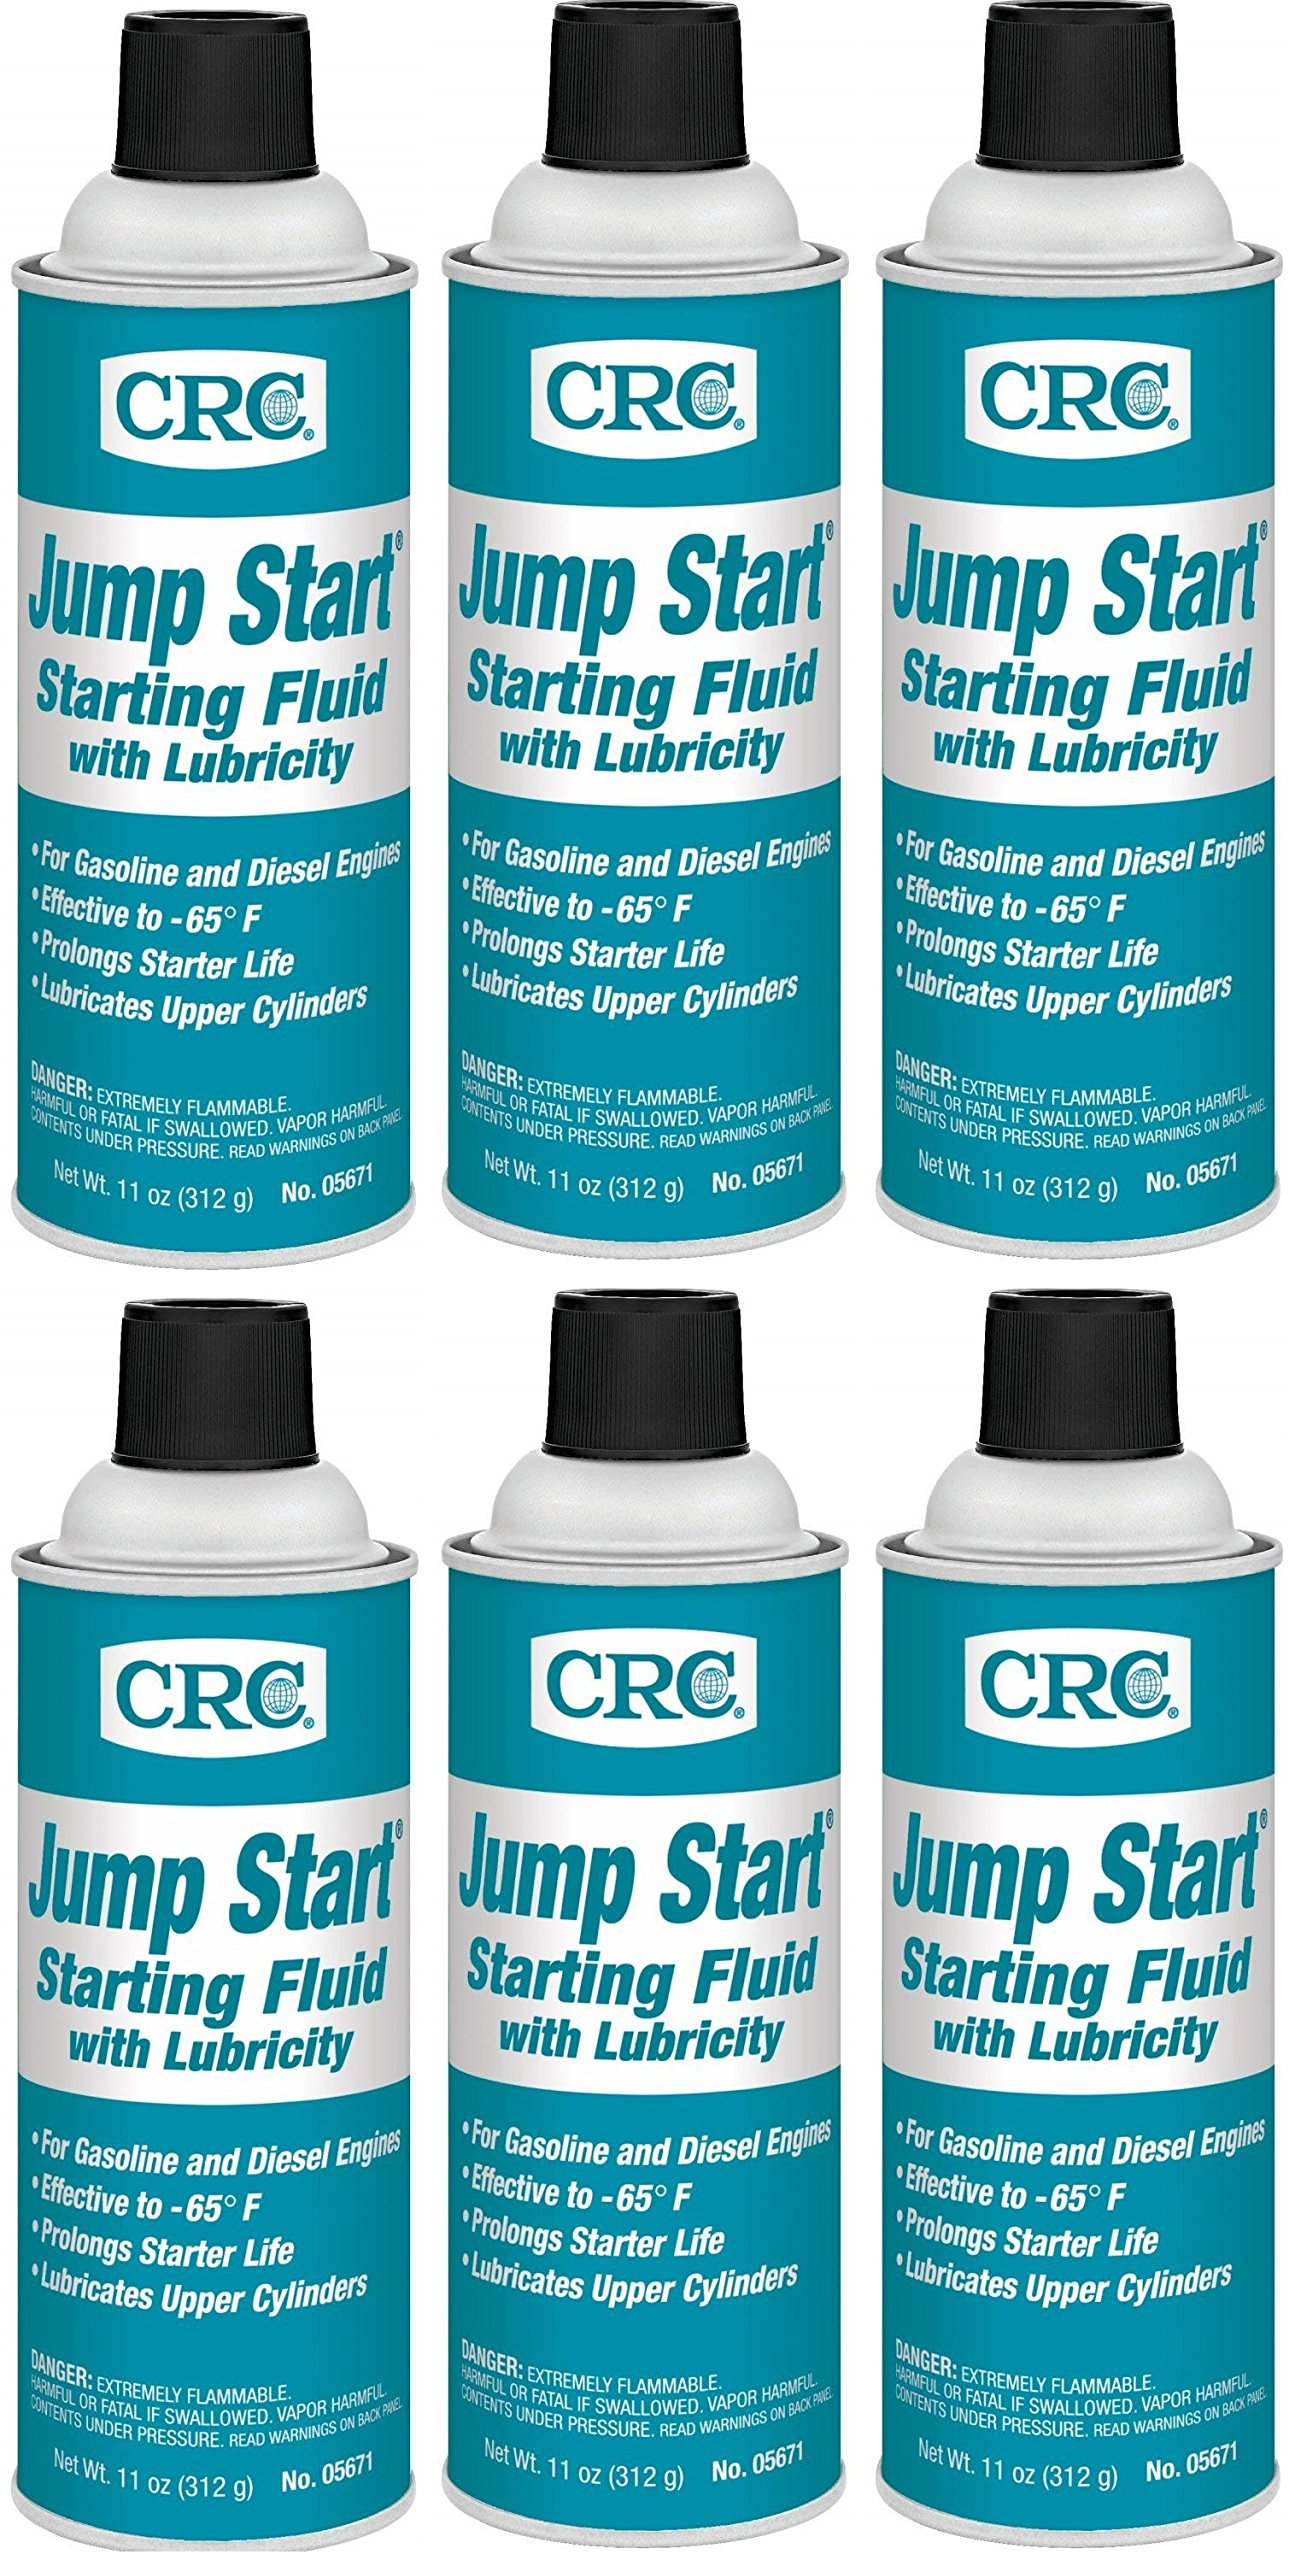 CRC  05671 Jump Start Starting Fluid Lubricity - 11 Wt oz. (6) by CRC